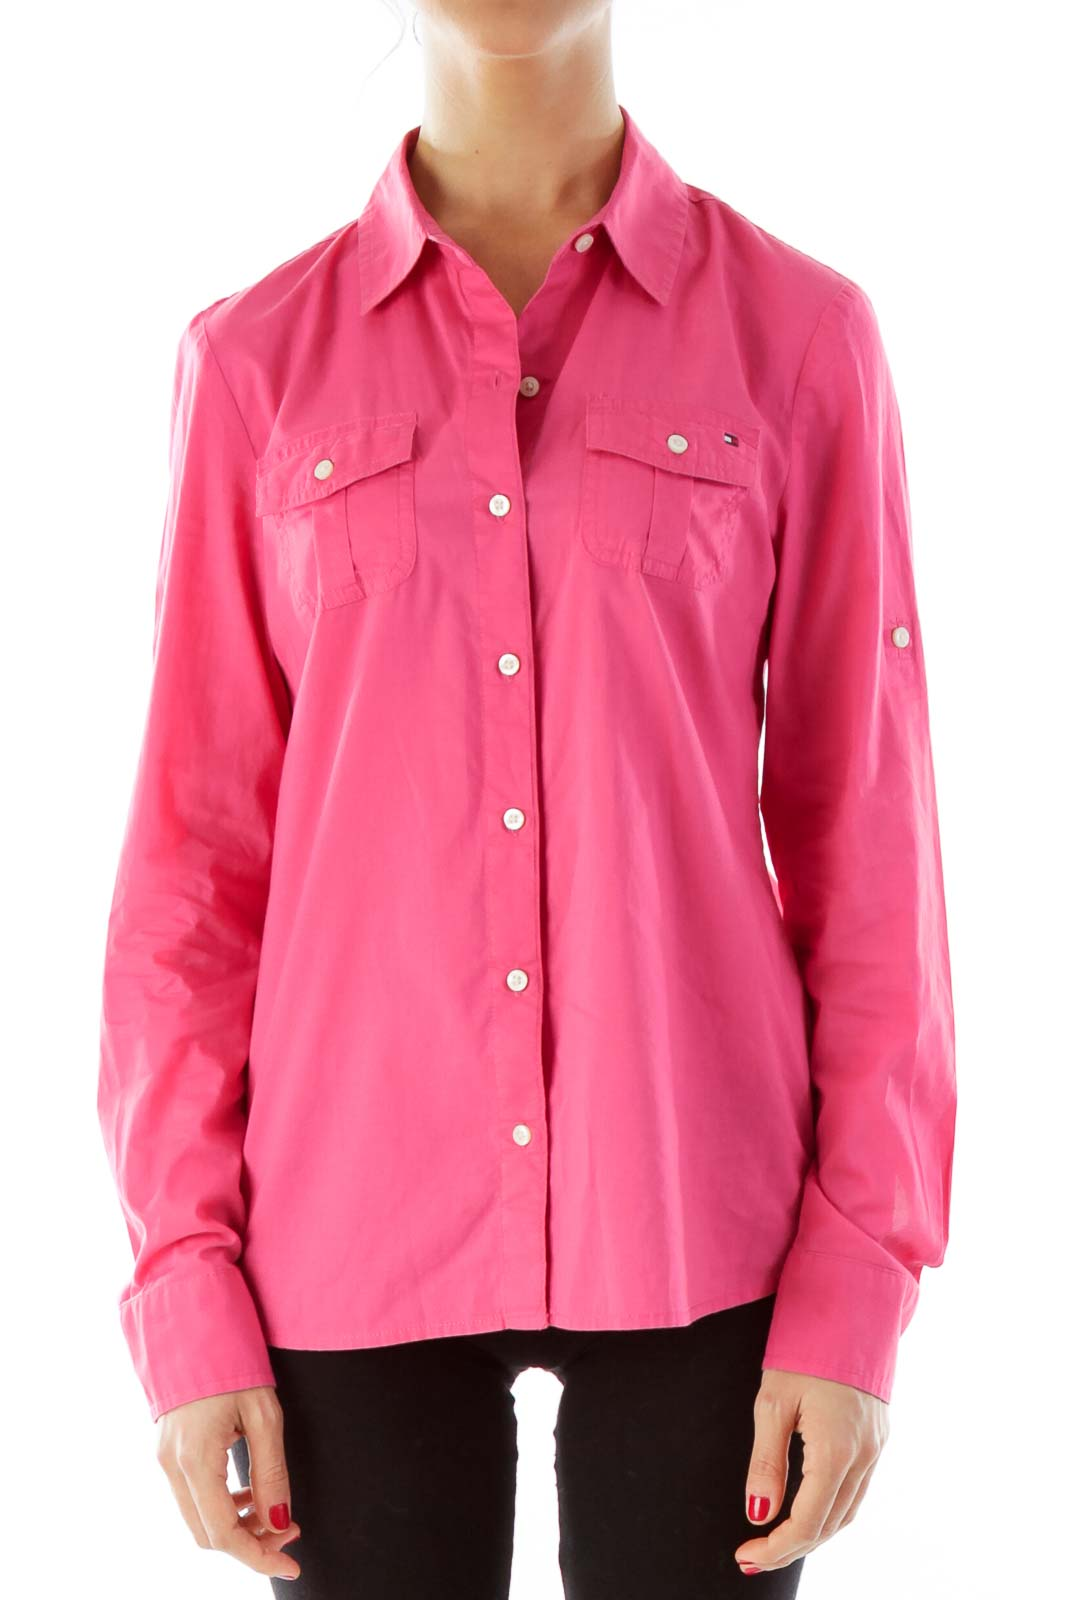 Pink Button-Up Shirt